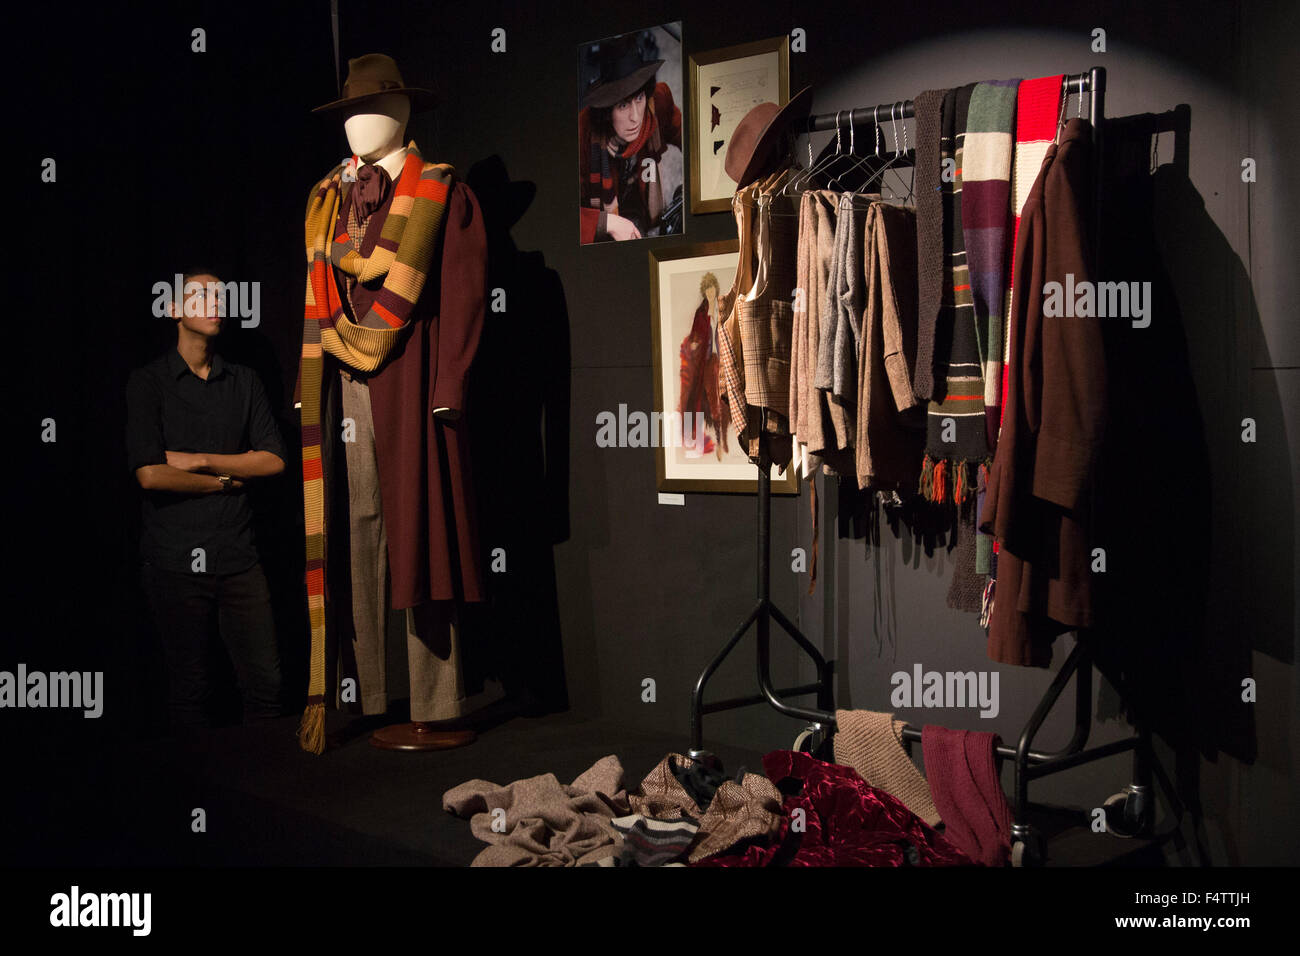 Costumes worn by the 4th doctor Tom Baker Doctor Who. Costumes from the exhibition Dressed by Angels 175 years of costumes from costume house Angels. & London UK. 22/10/2015. Costumes worn by the 4th doctor Tom Baker ...